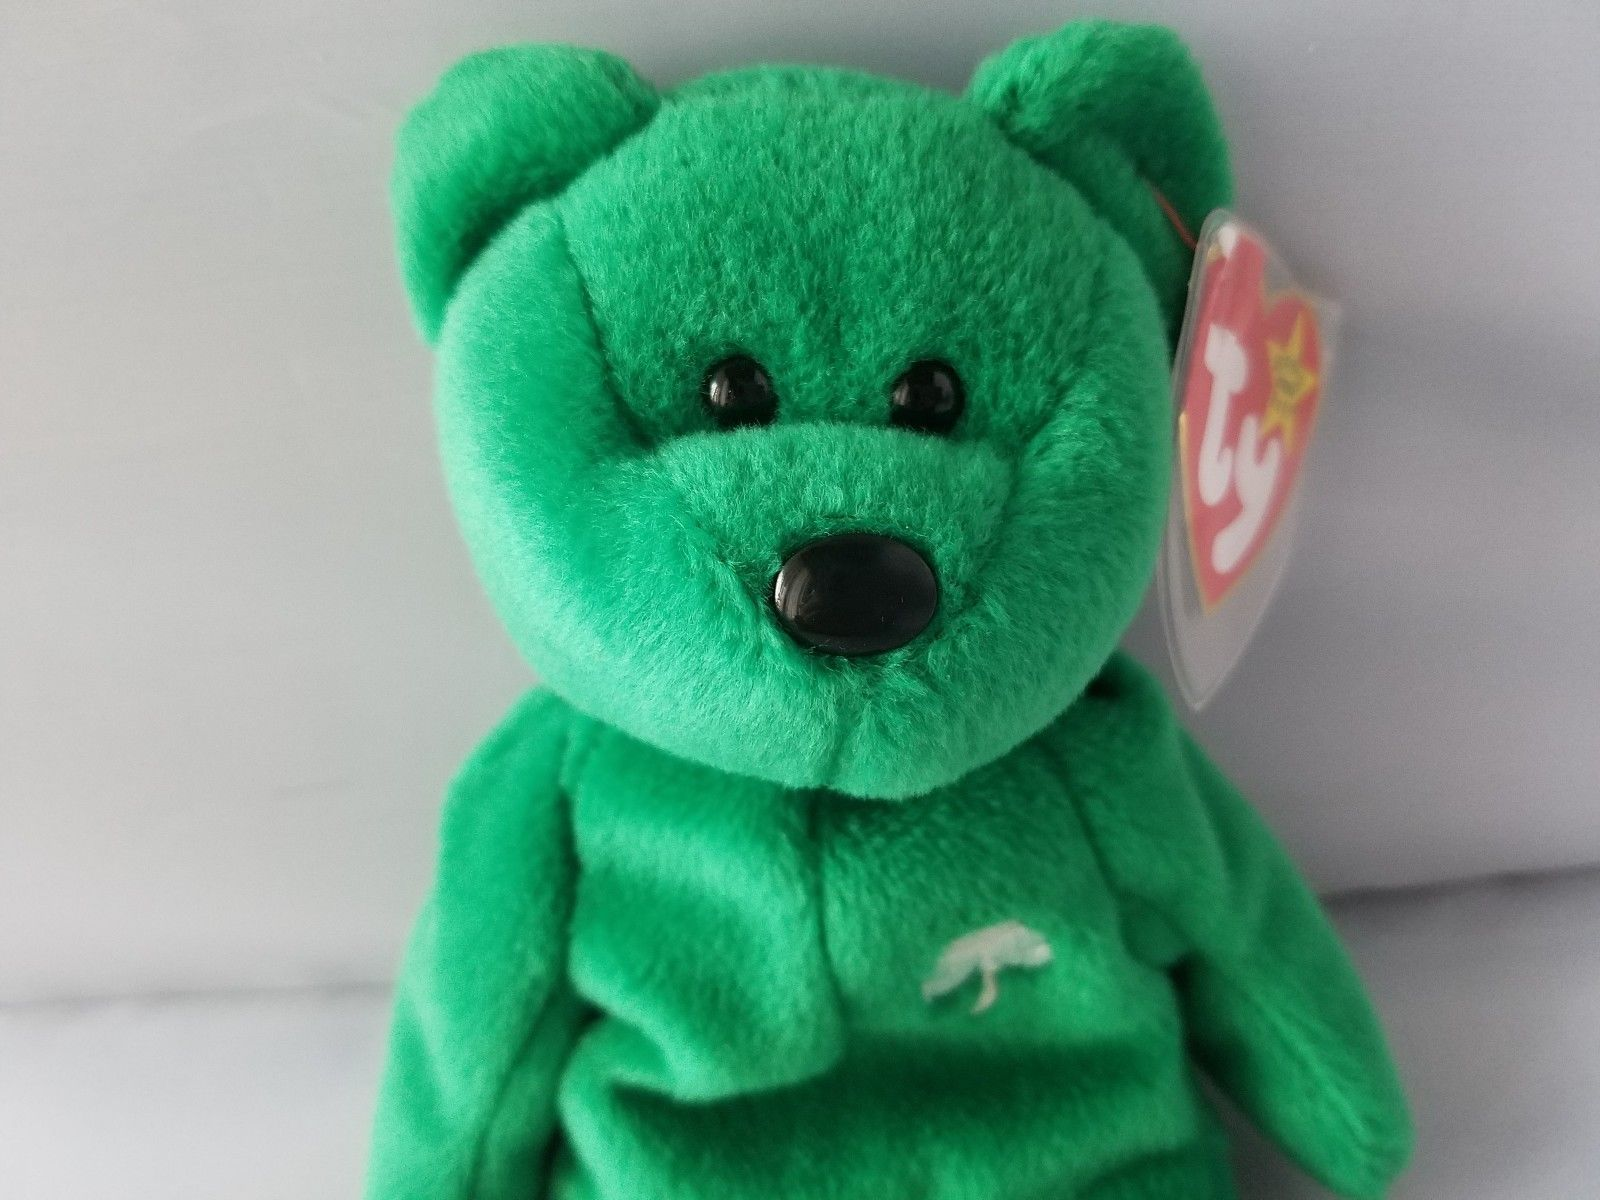 85f841aa437 ... Ty Beanie Baby Erin St. Patrick s Day Green Irish Bear 5th Generation  ...